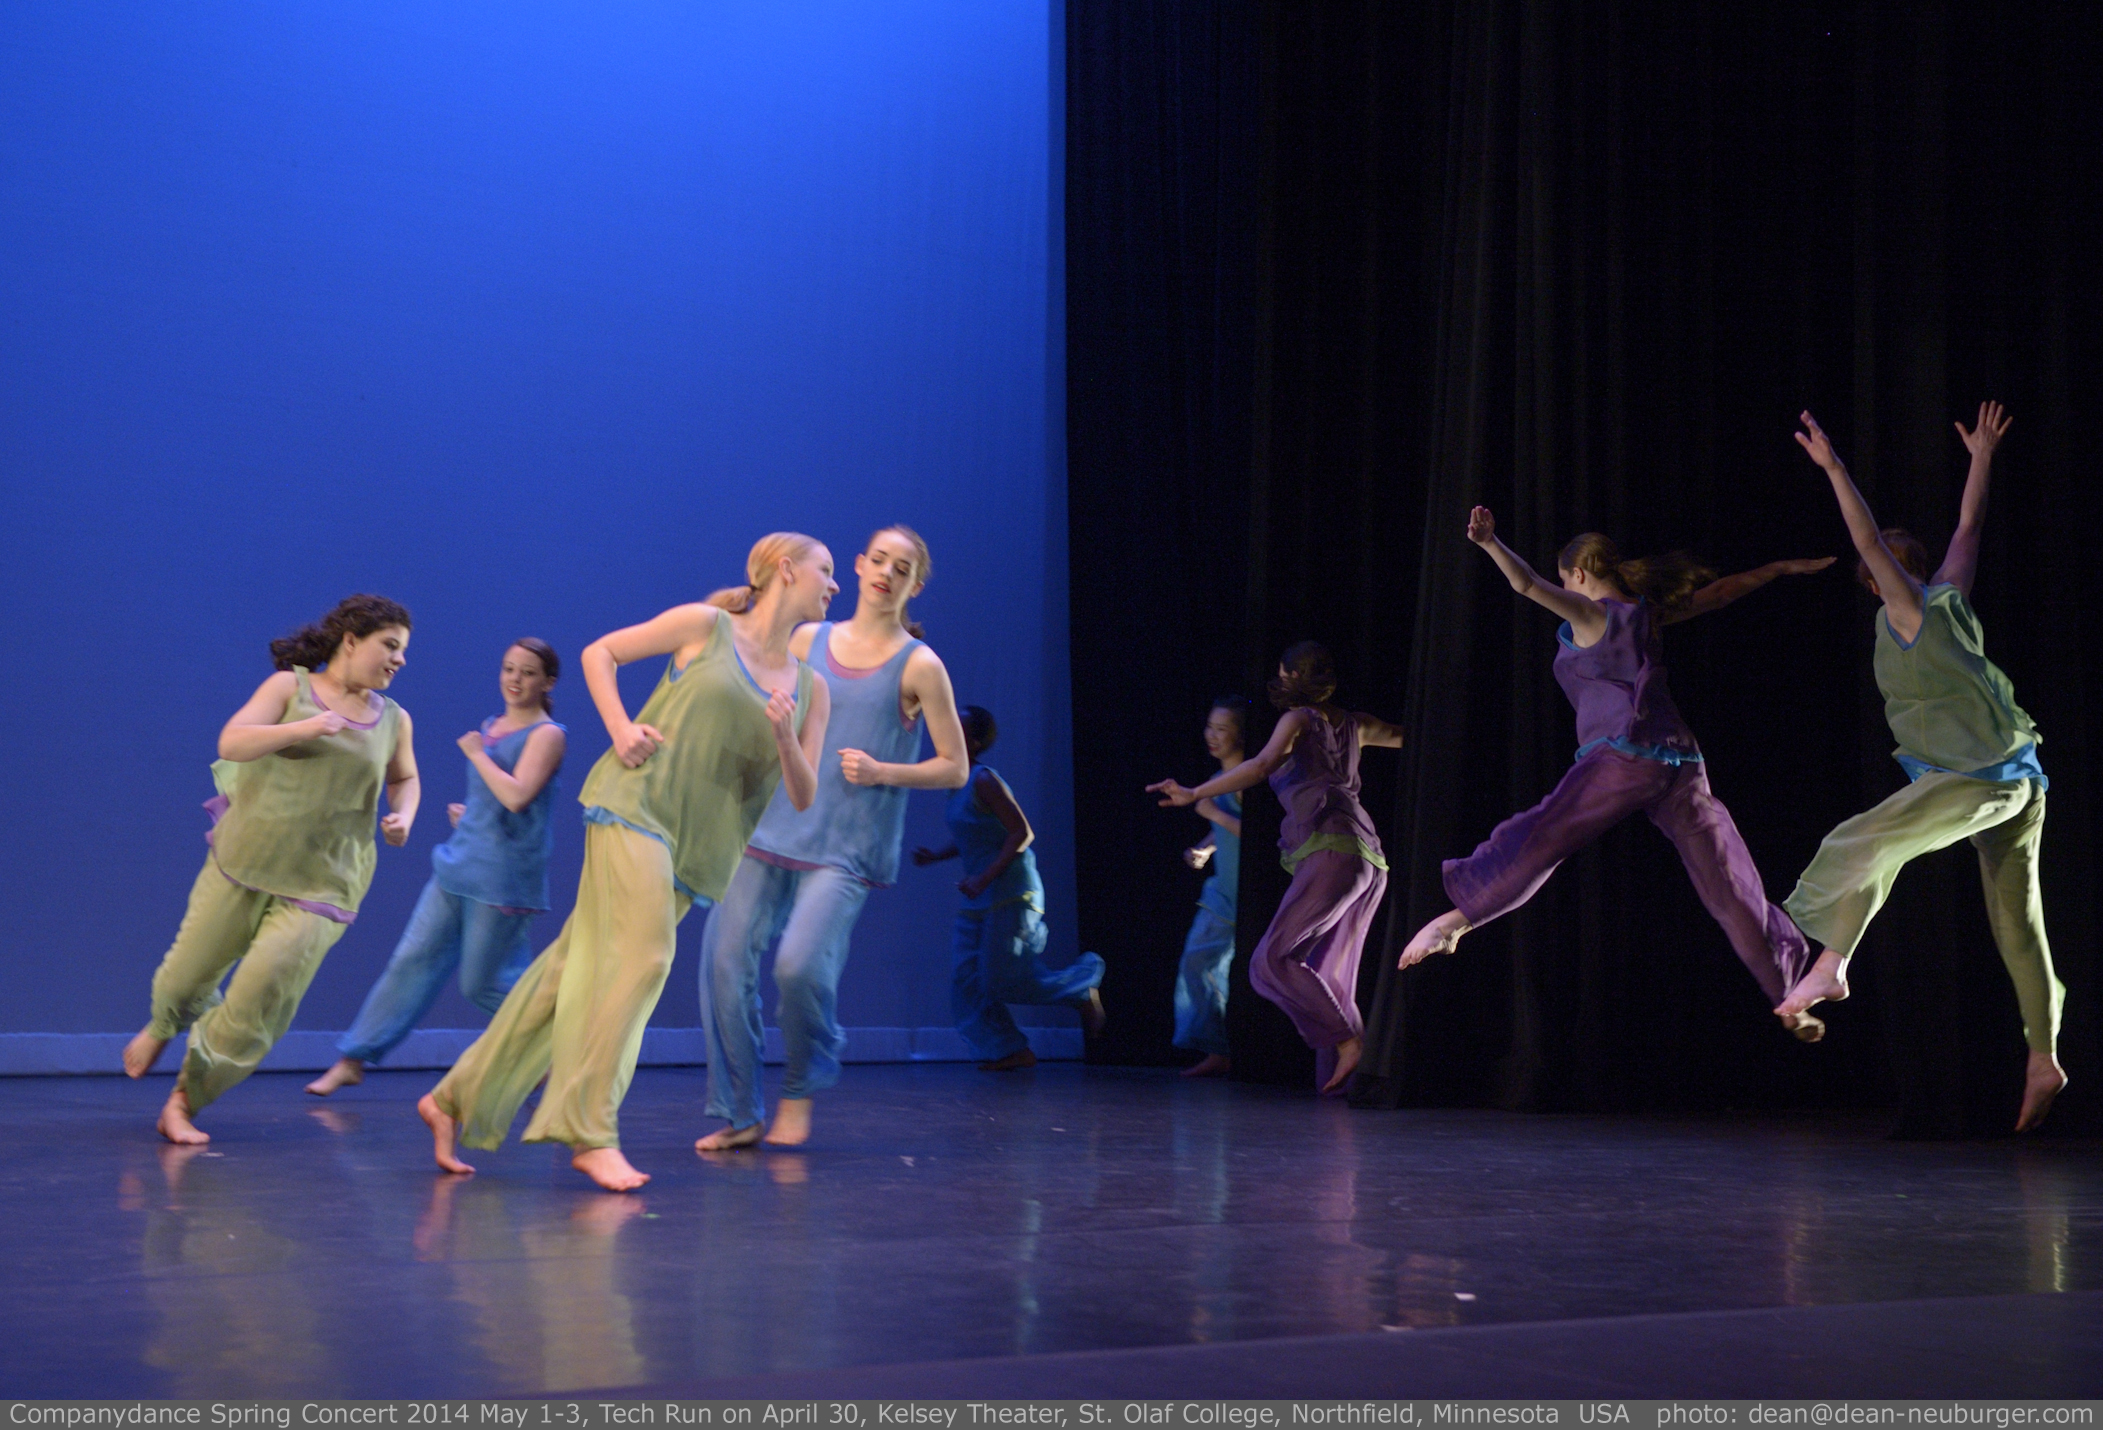 Companydance Spring Concert 2014 May 1-3, Tech Run on April 30,